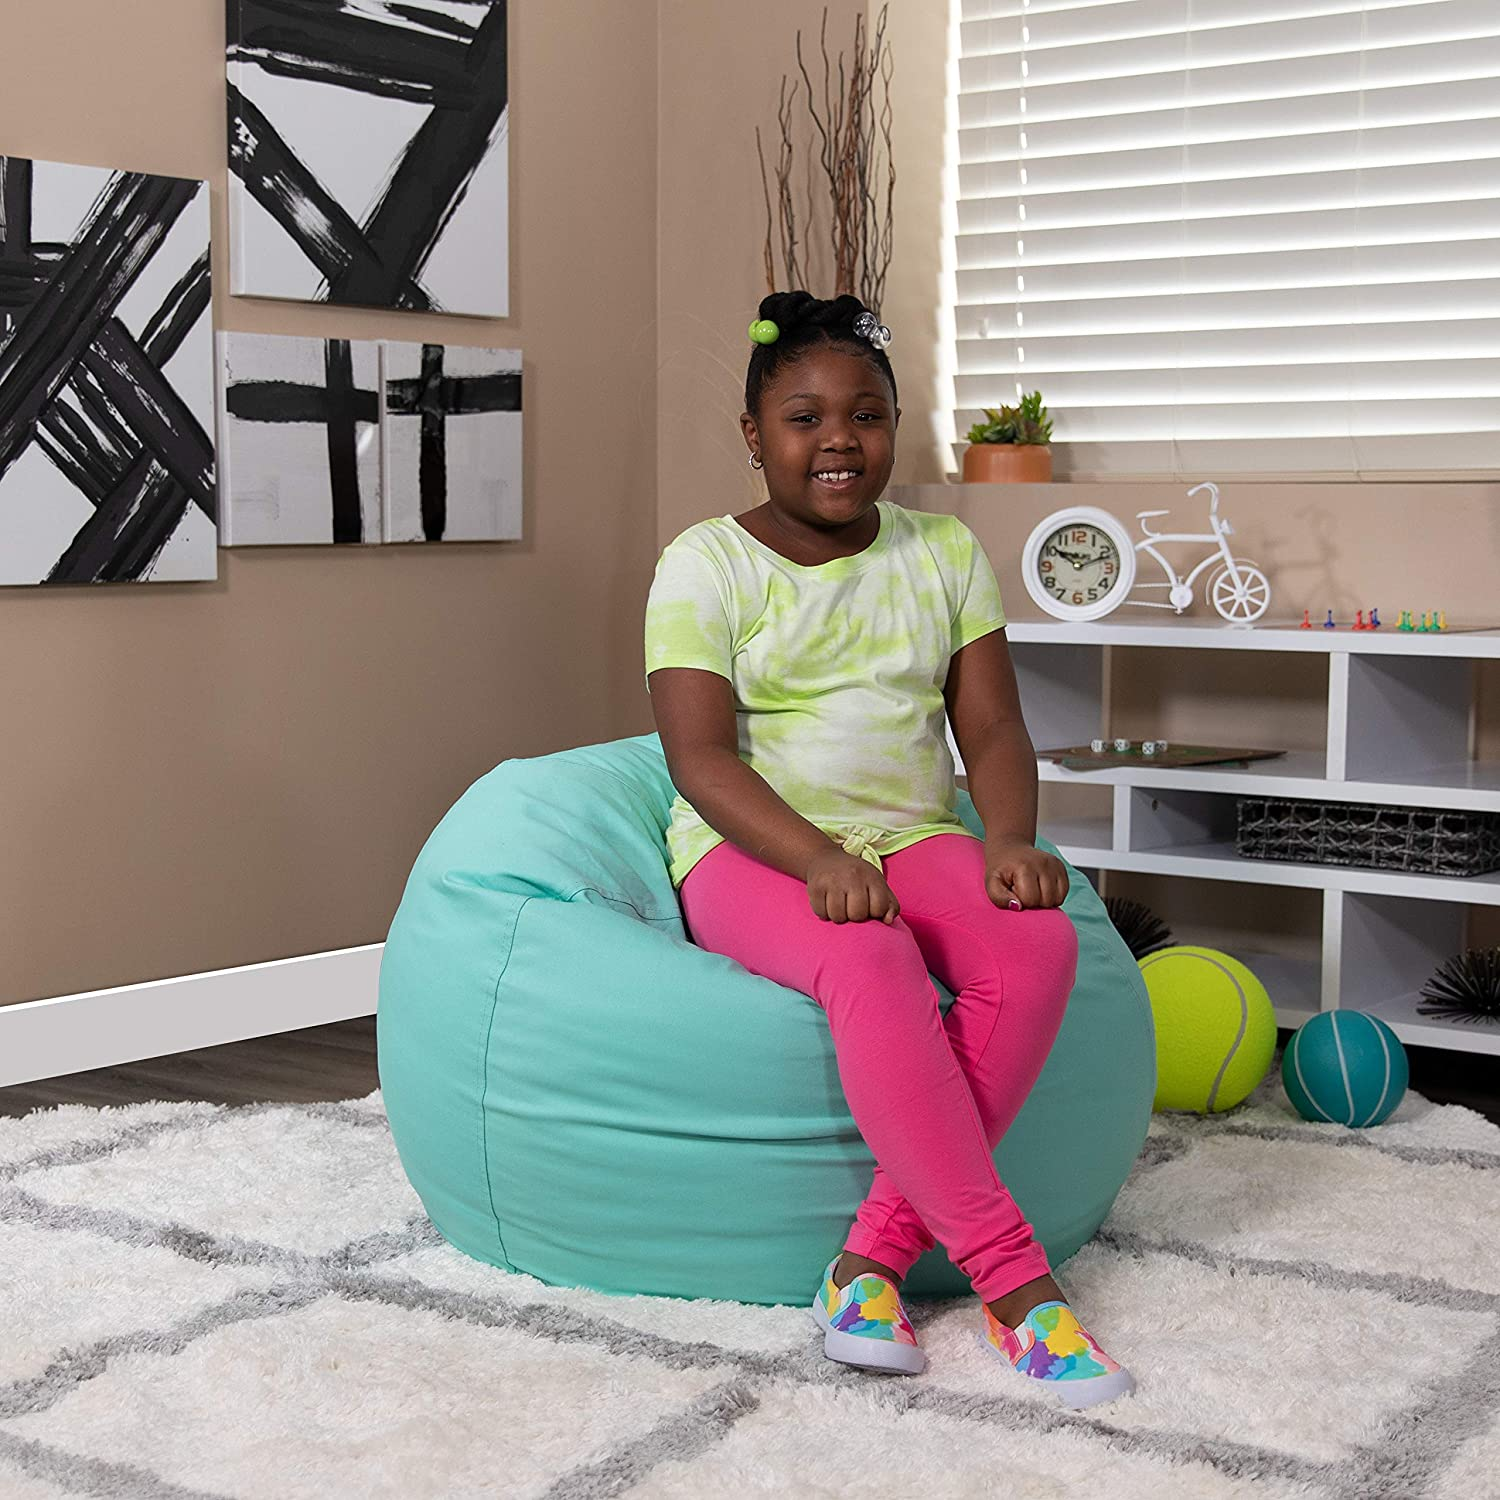 Student sitting on a bean bag.